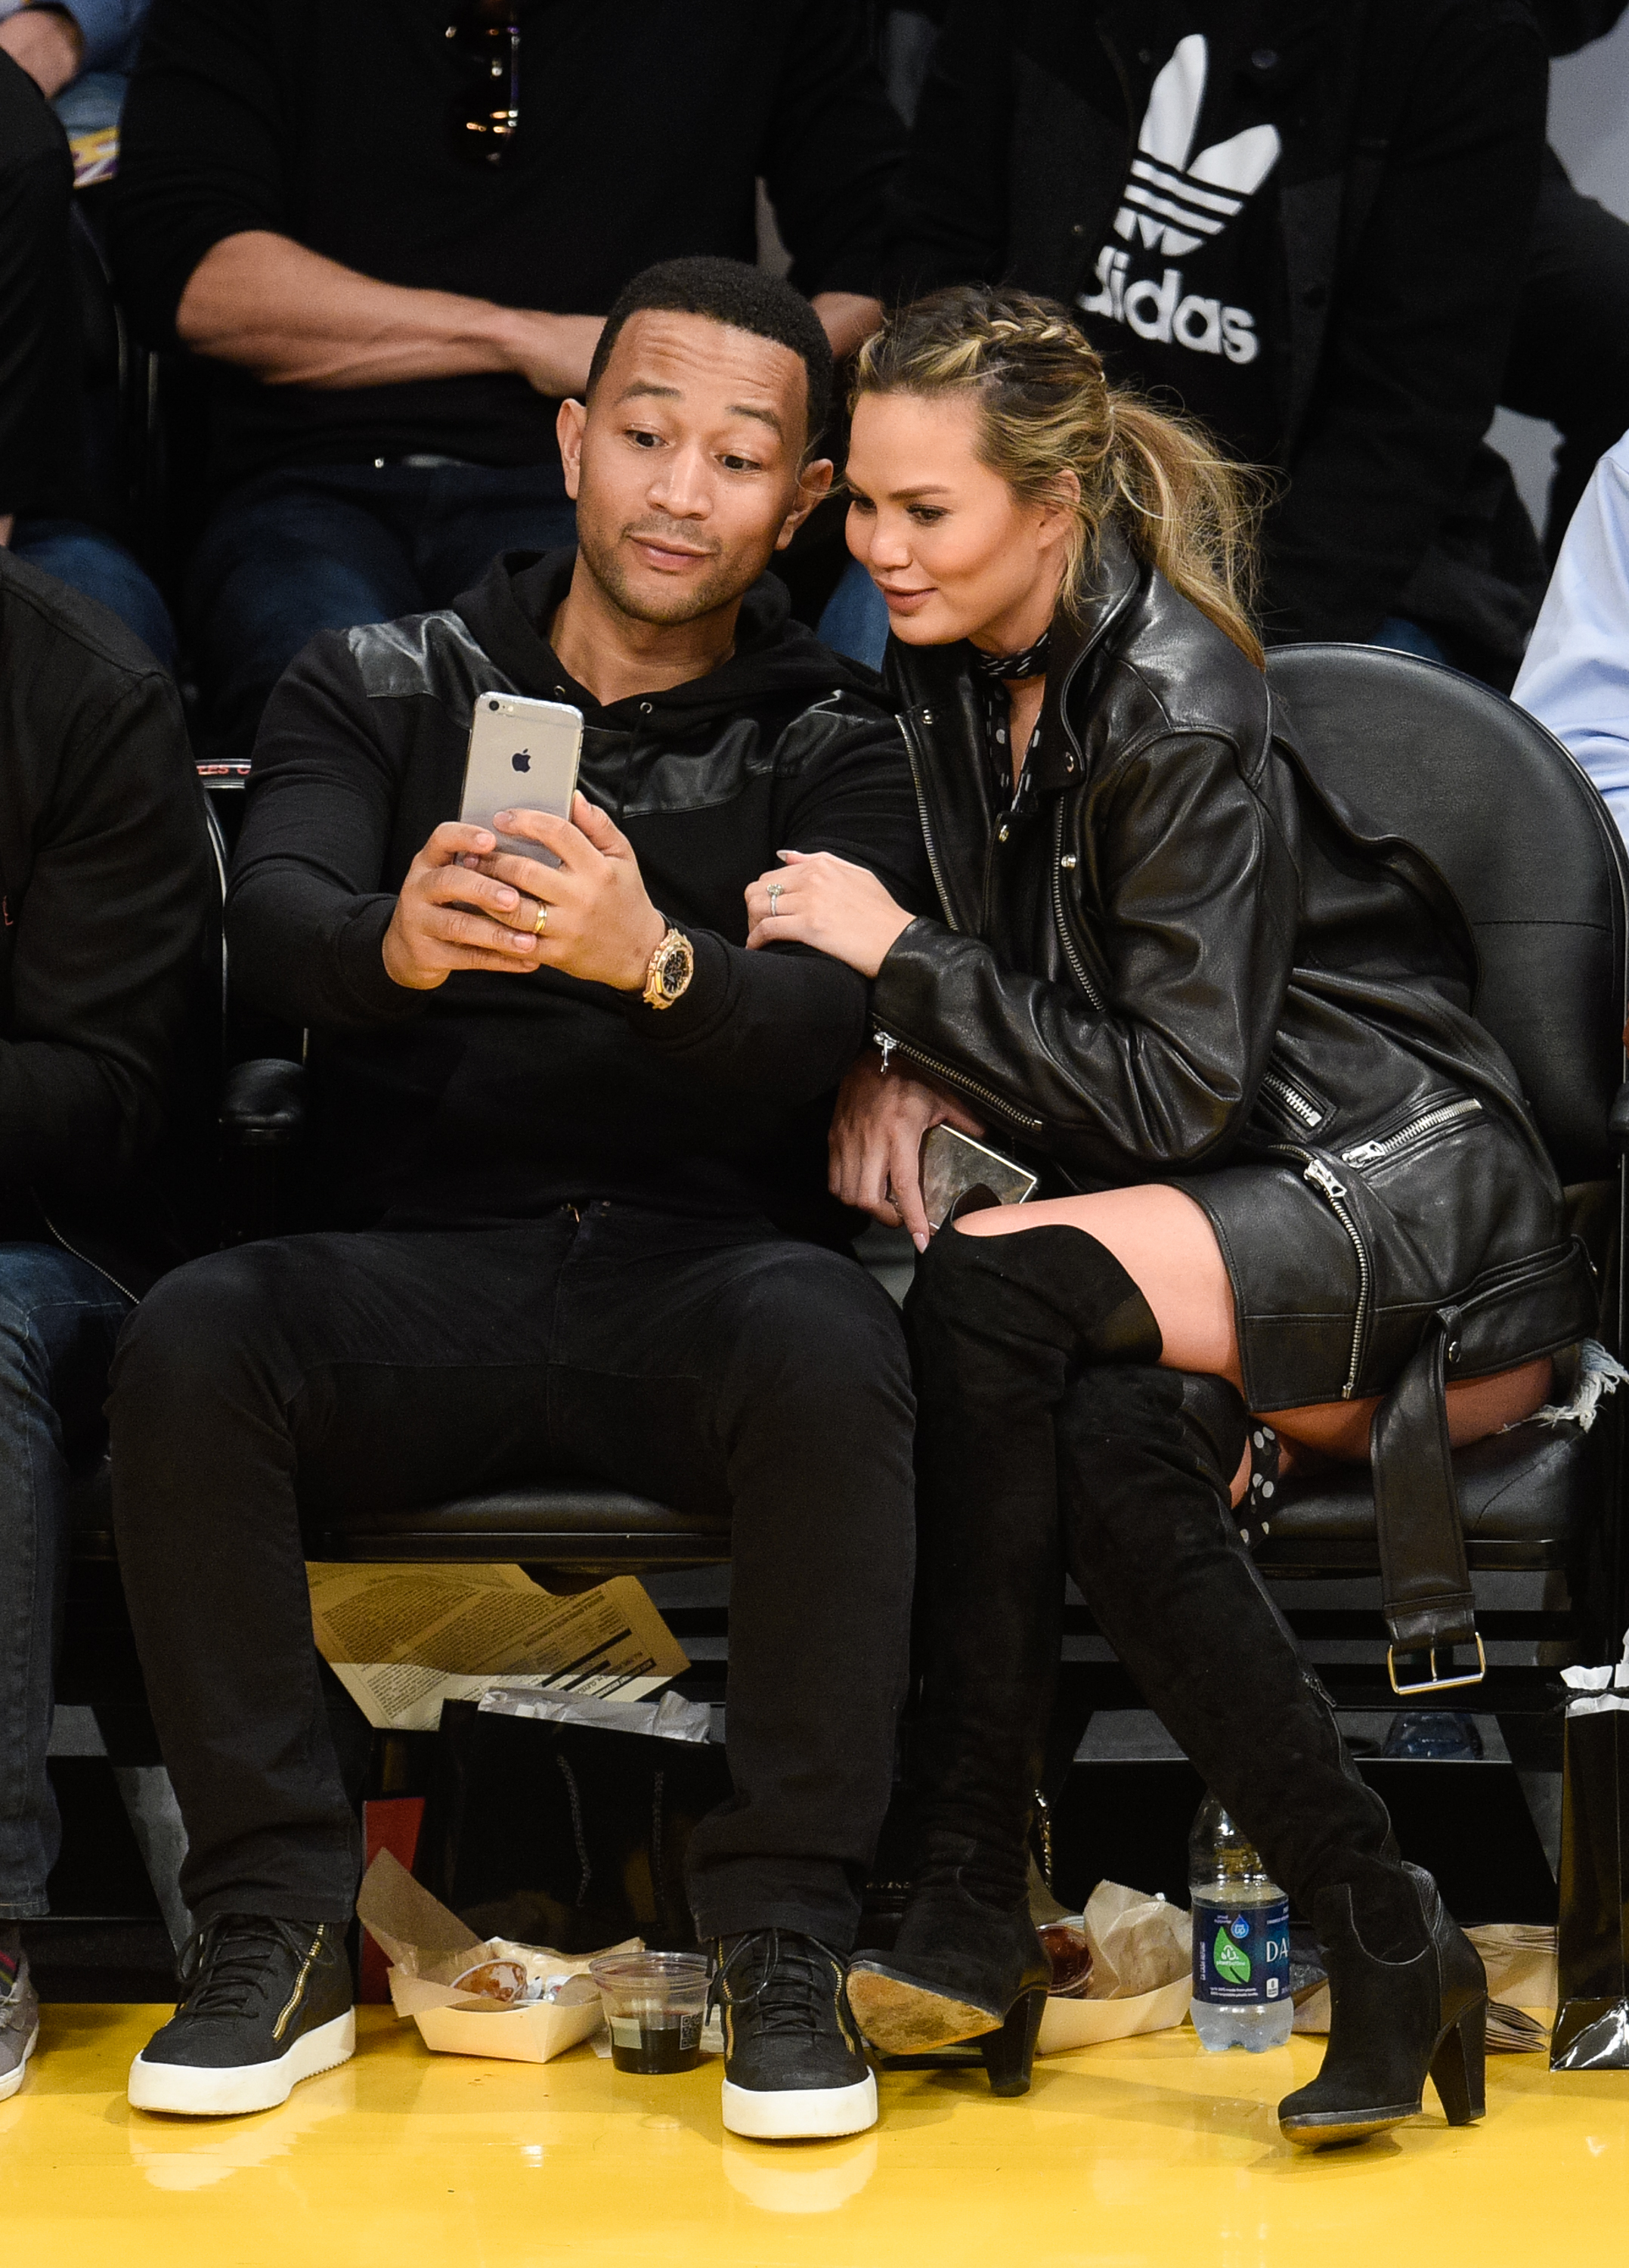 John Legend and Chrissy Teigen at a basketball game in Los Angeles on March 10, 2016.